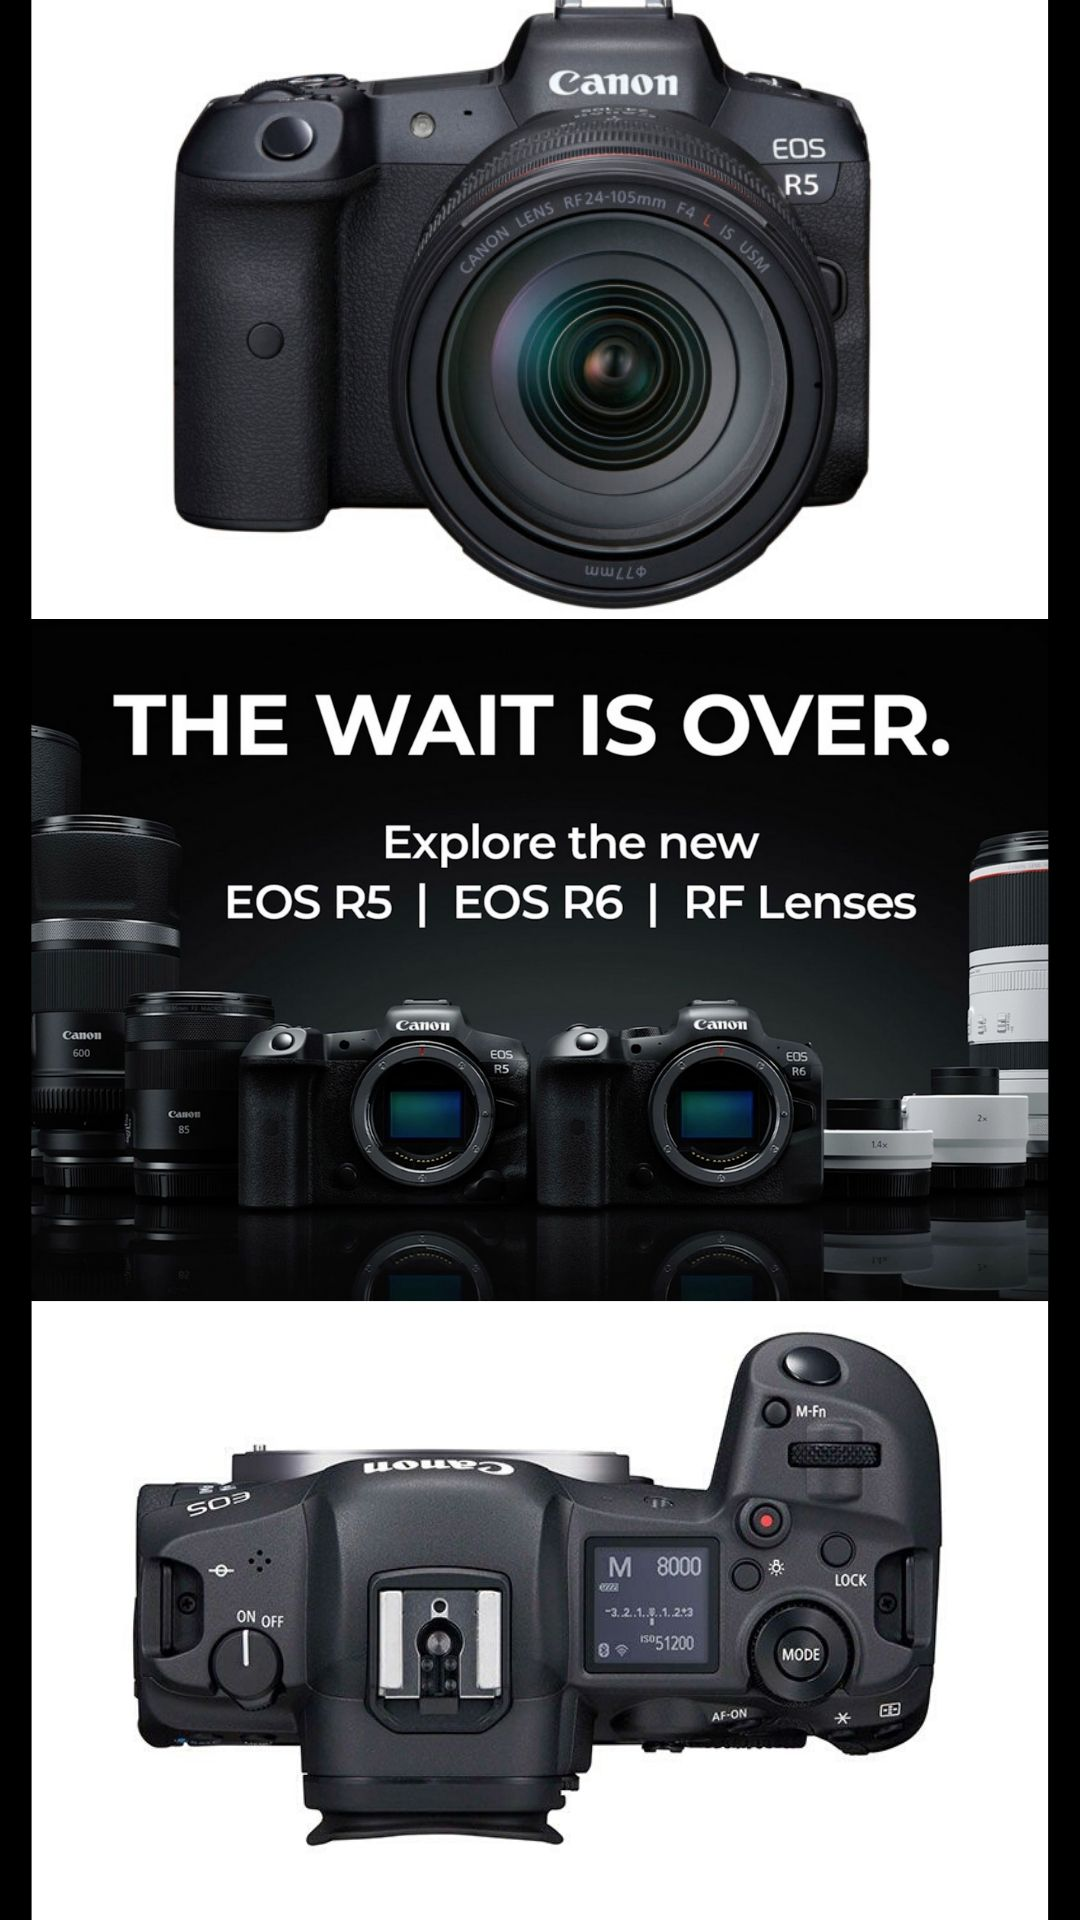 Canon EOS R5 VS R6: Everything You Need To Know